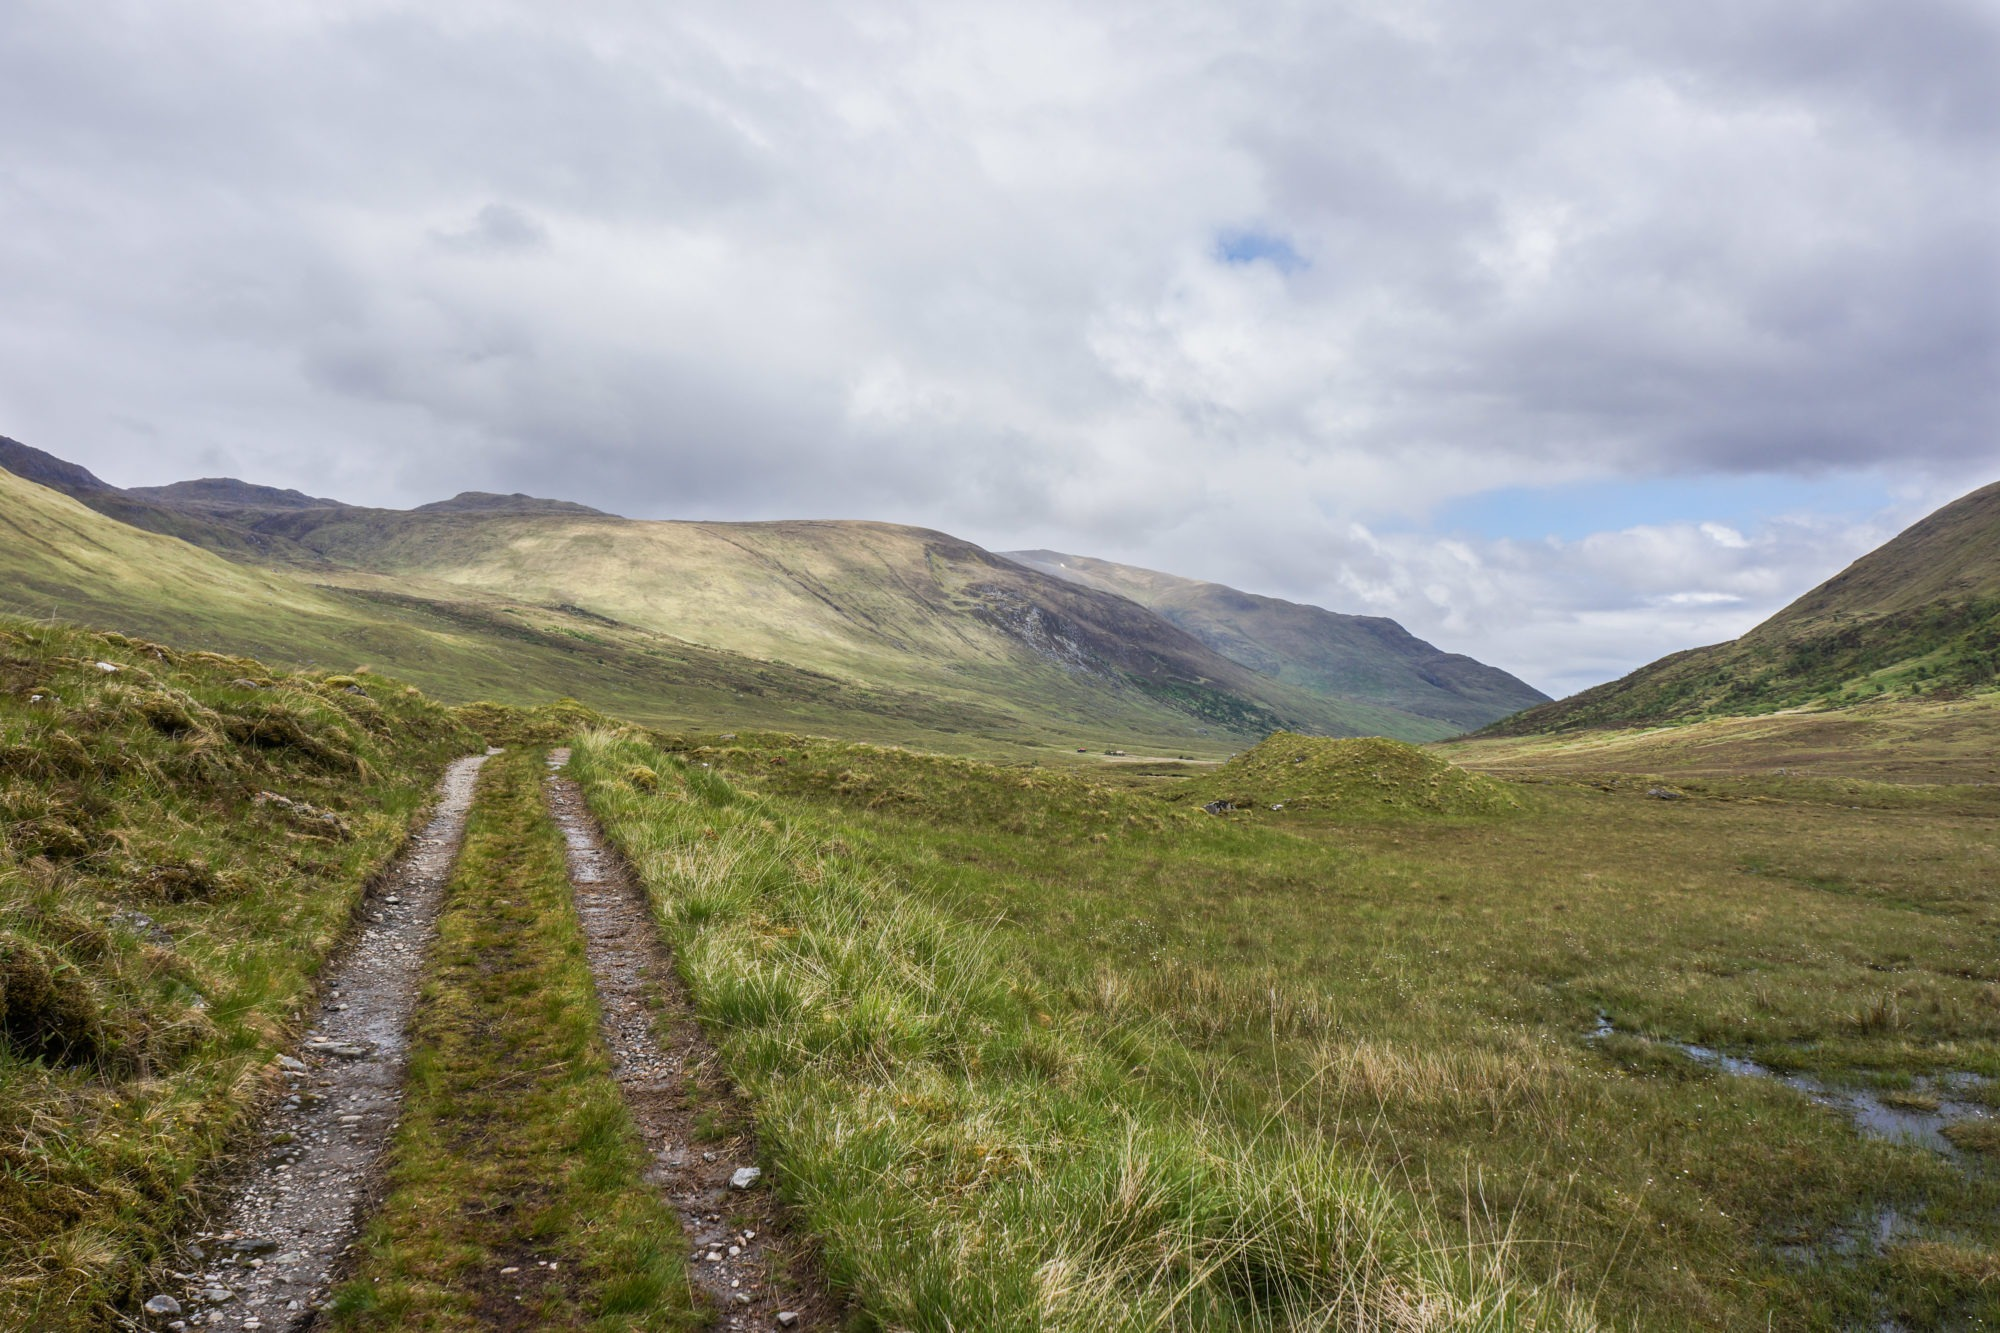 kosten affric kintail way